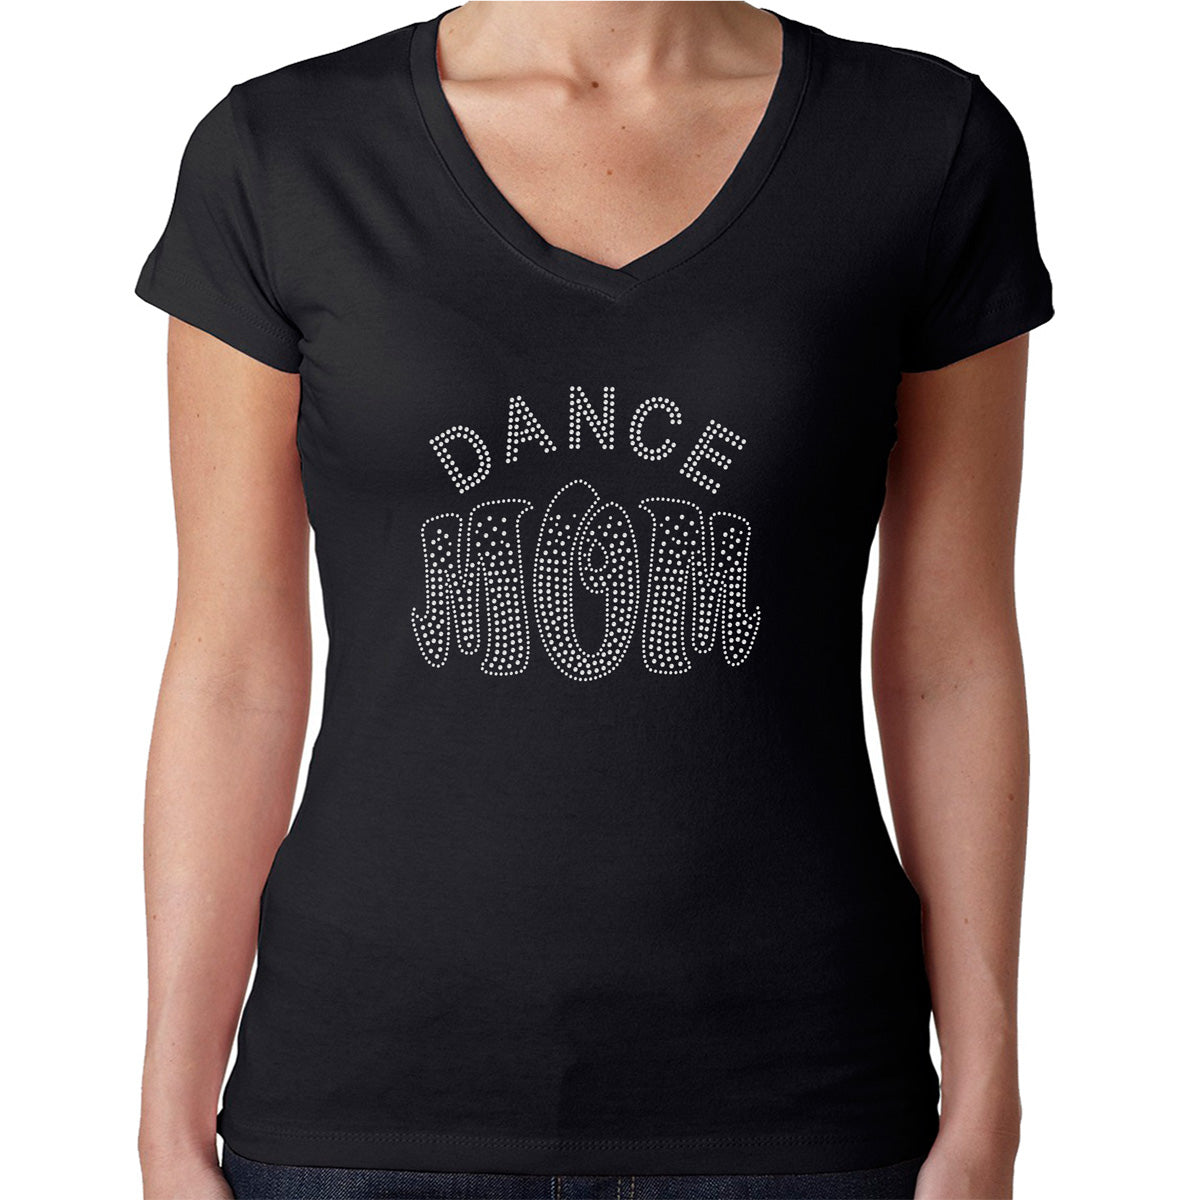 Womens T-Shirt Rhinestone Bling Black Fitted Tee Dance Mom Crystal White Sparkle